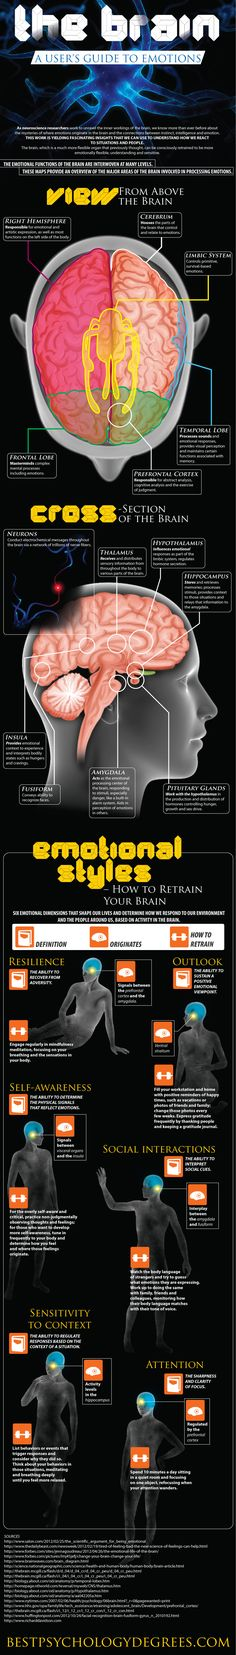 THE BRAIN - A USER'S GUIDE TO EMOTIONS *How To Retrain Your Brain Exercise!